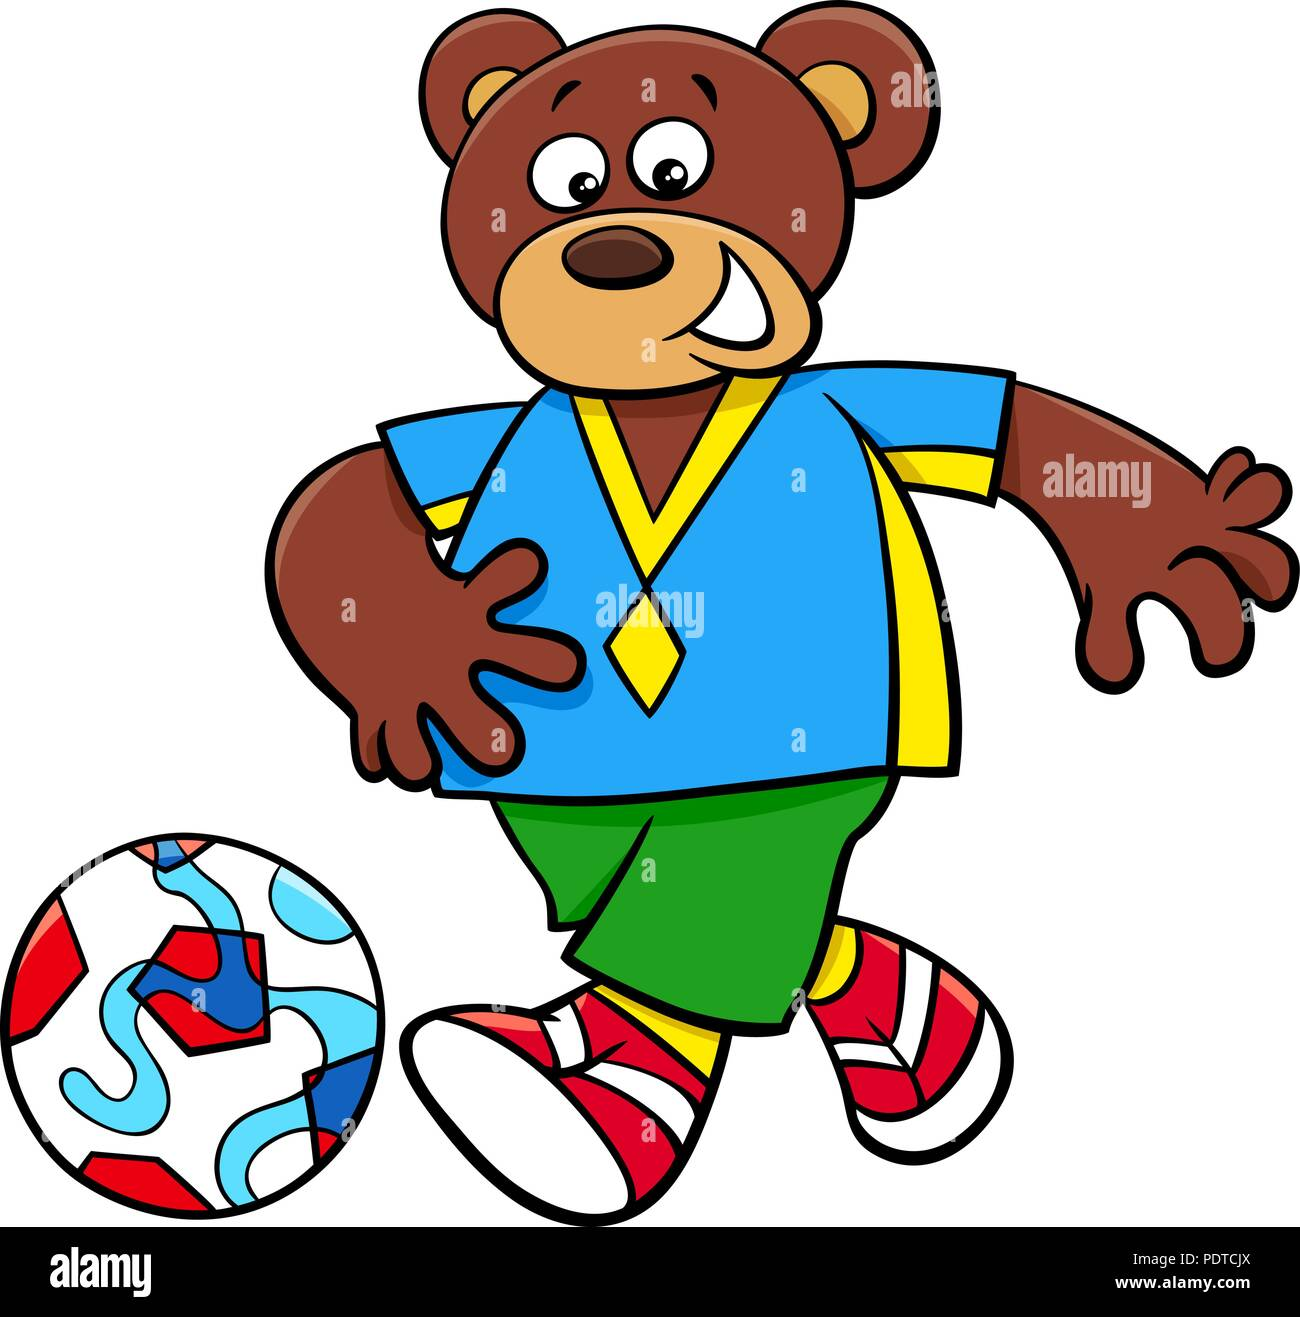 Cartoon Illustrations of Bear Football or Soccer Player Character with Ball - Stock Vector